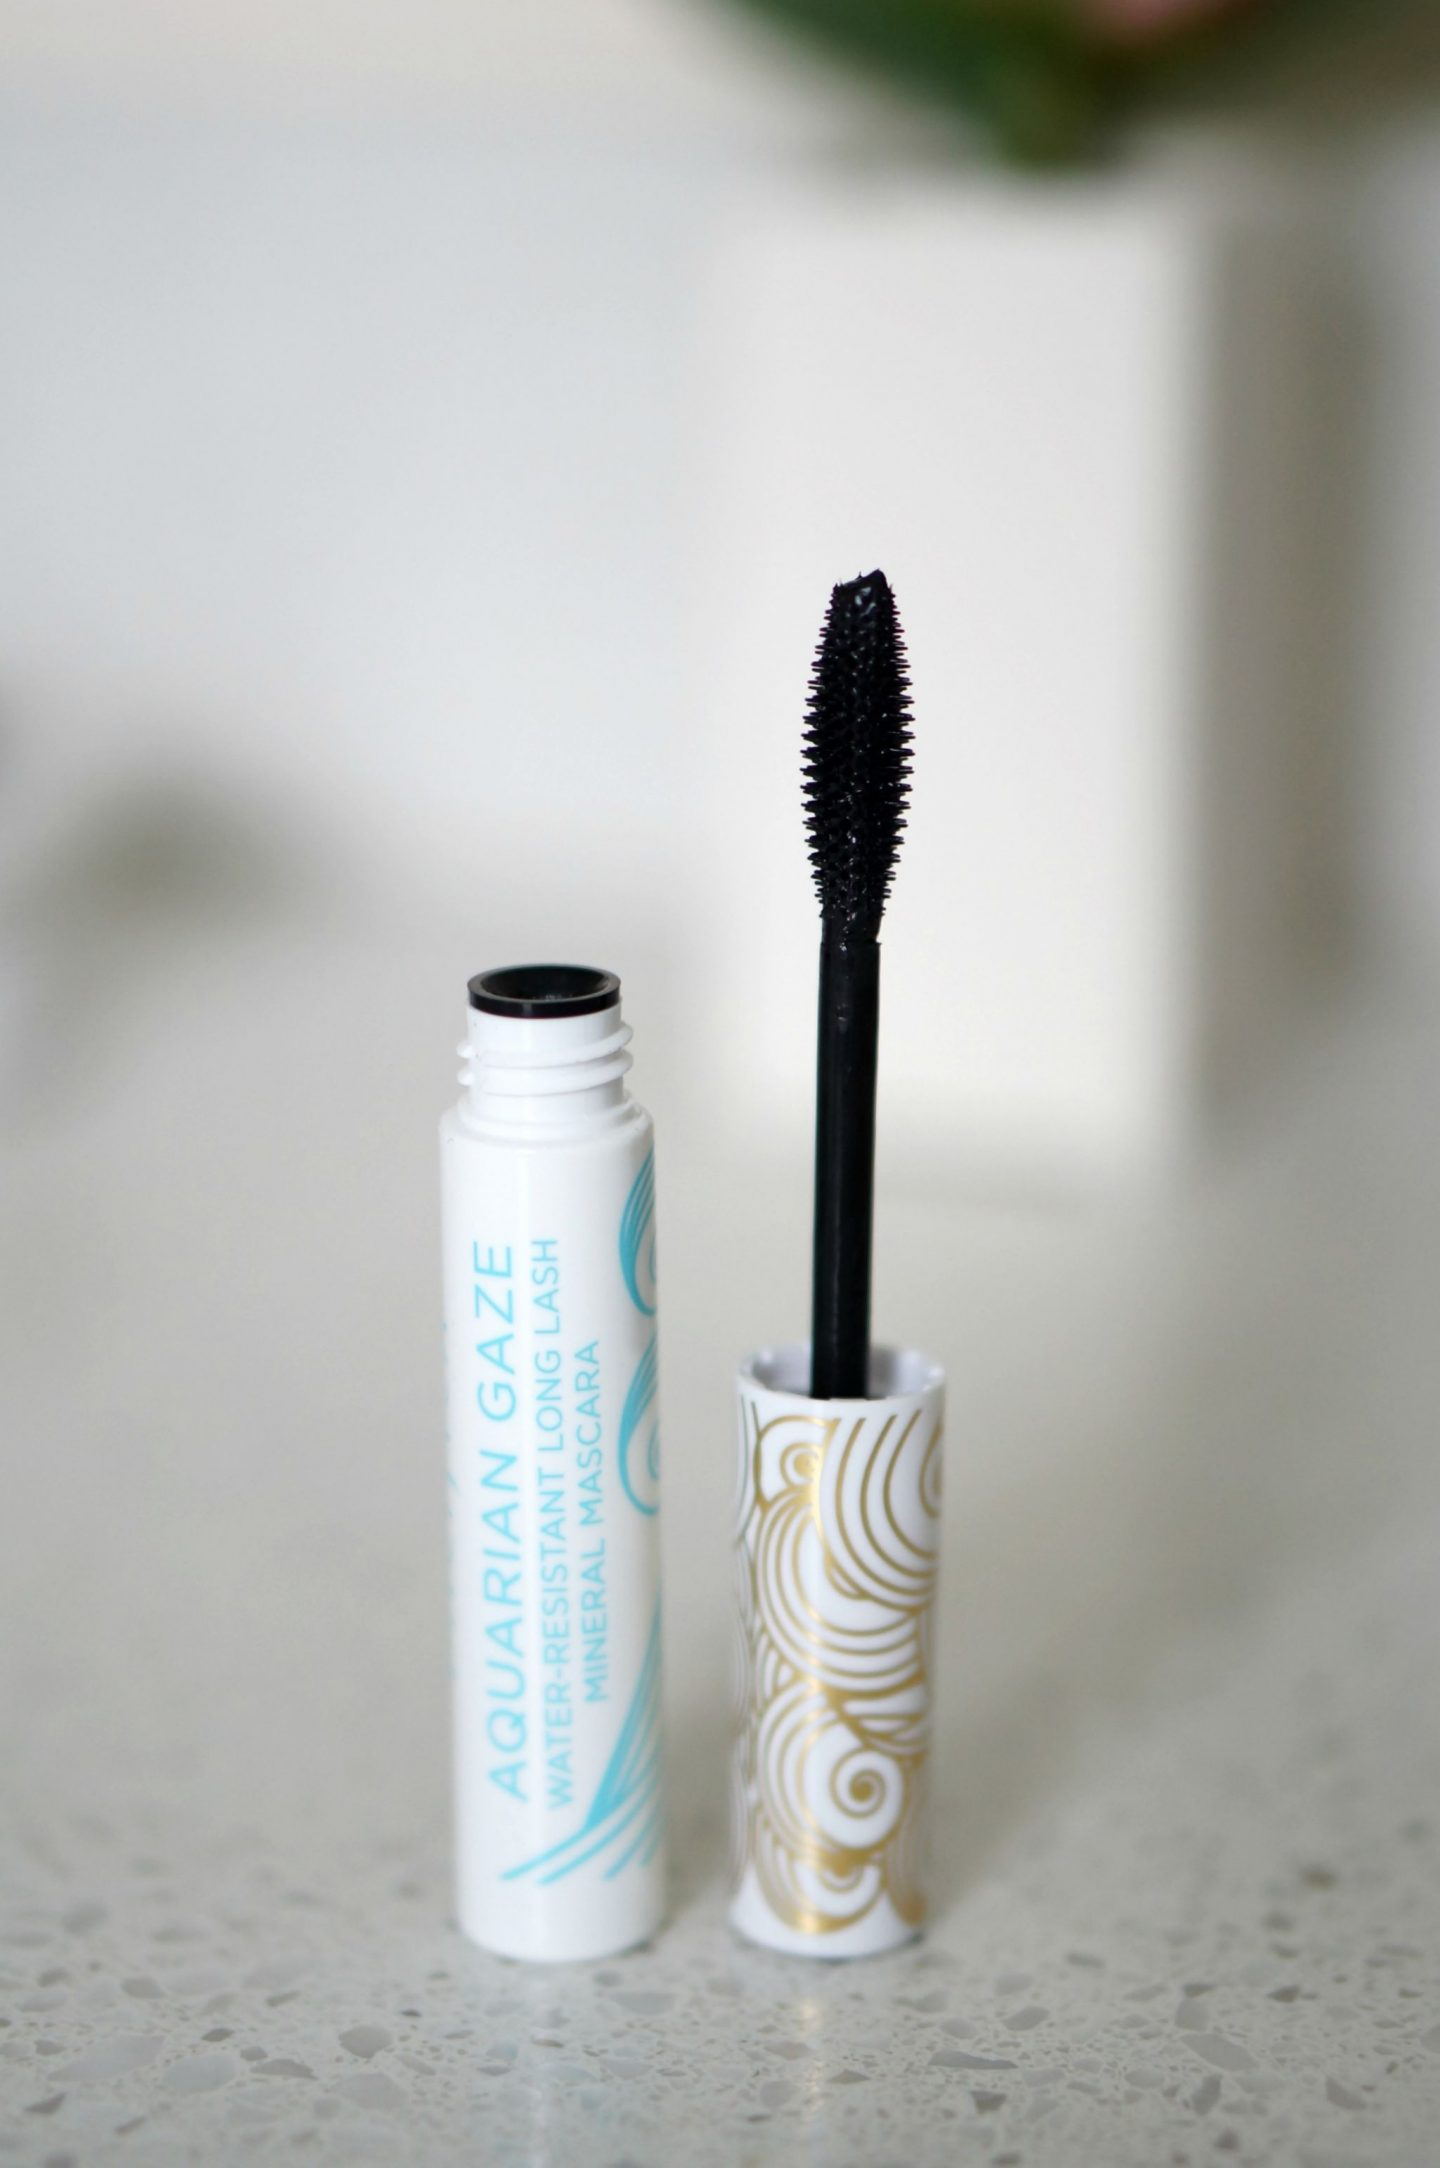 I am ever on the search for the best cruelty free drugstore mascara.  In today's installment of Beauty Battle, let's find out which mascara wins!